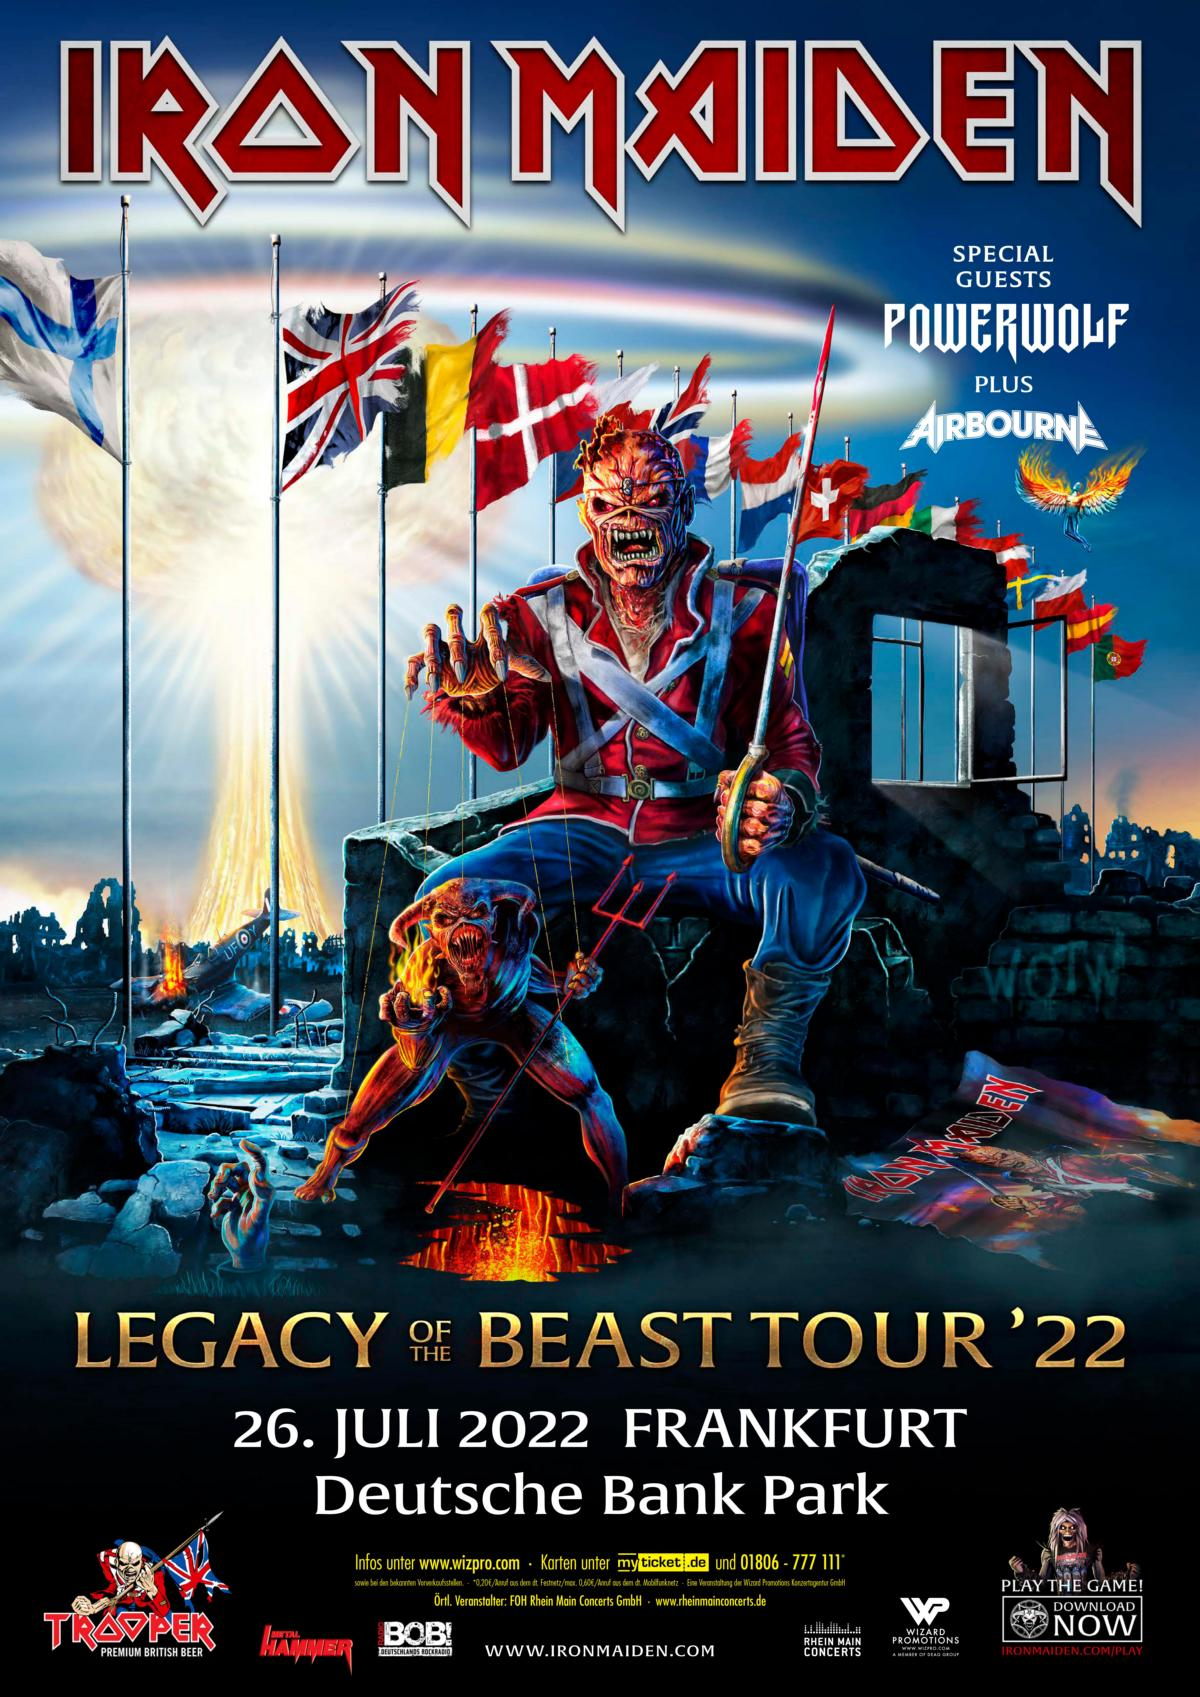 POWERWOLF Announces Second Show with Iron Maiden in Germany